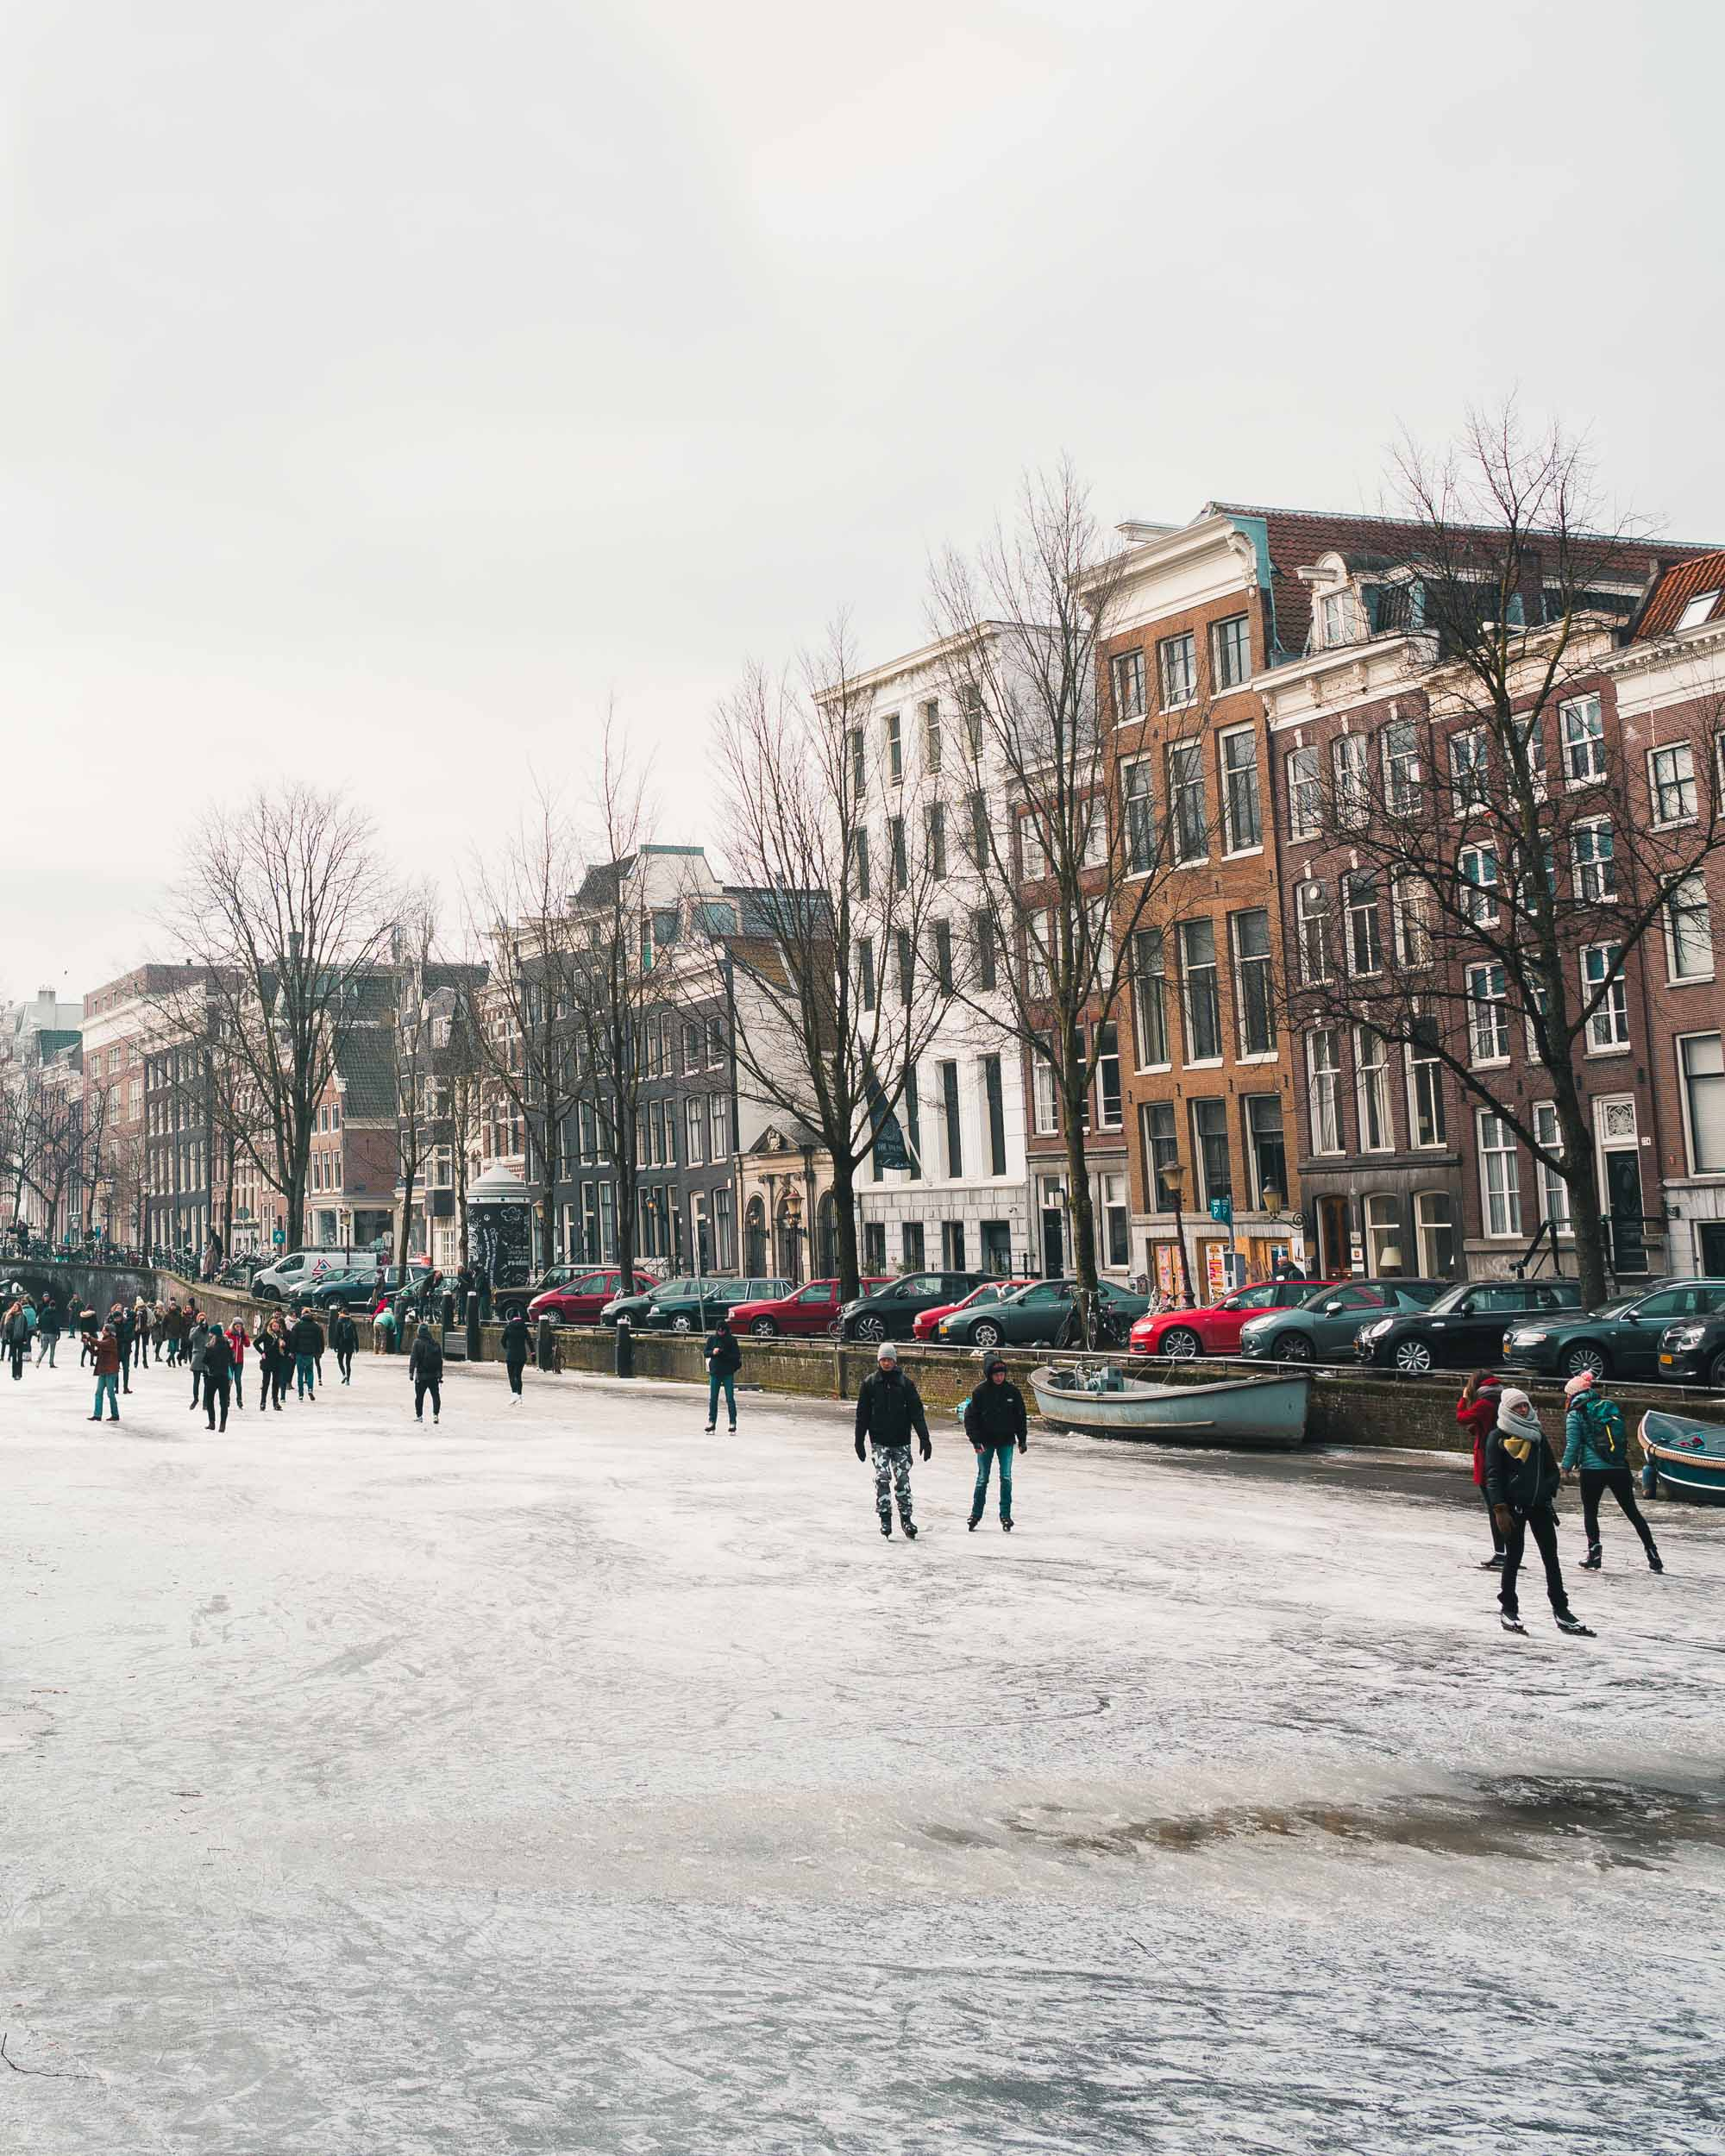 Ice skating on the frozen canals in Amsterdam The Netherlands